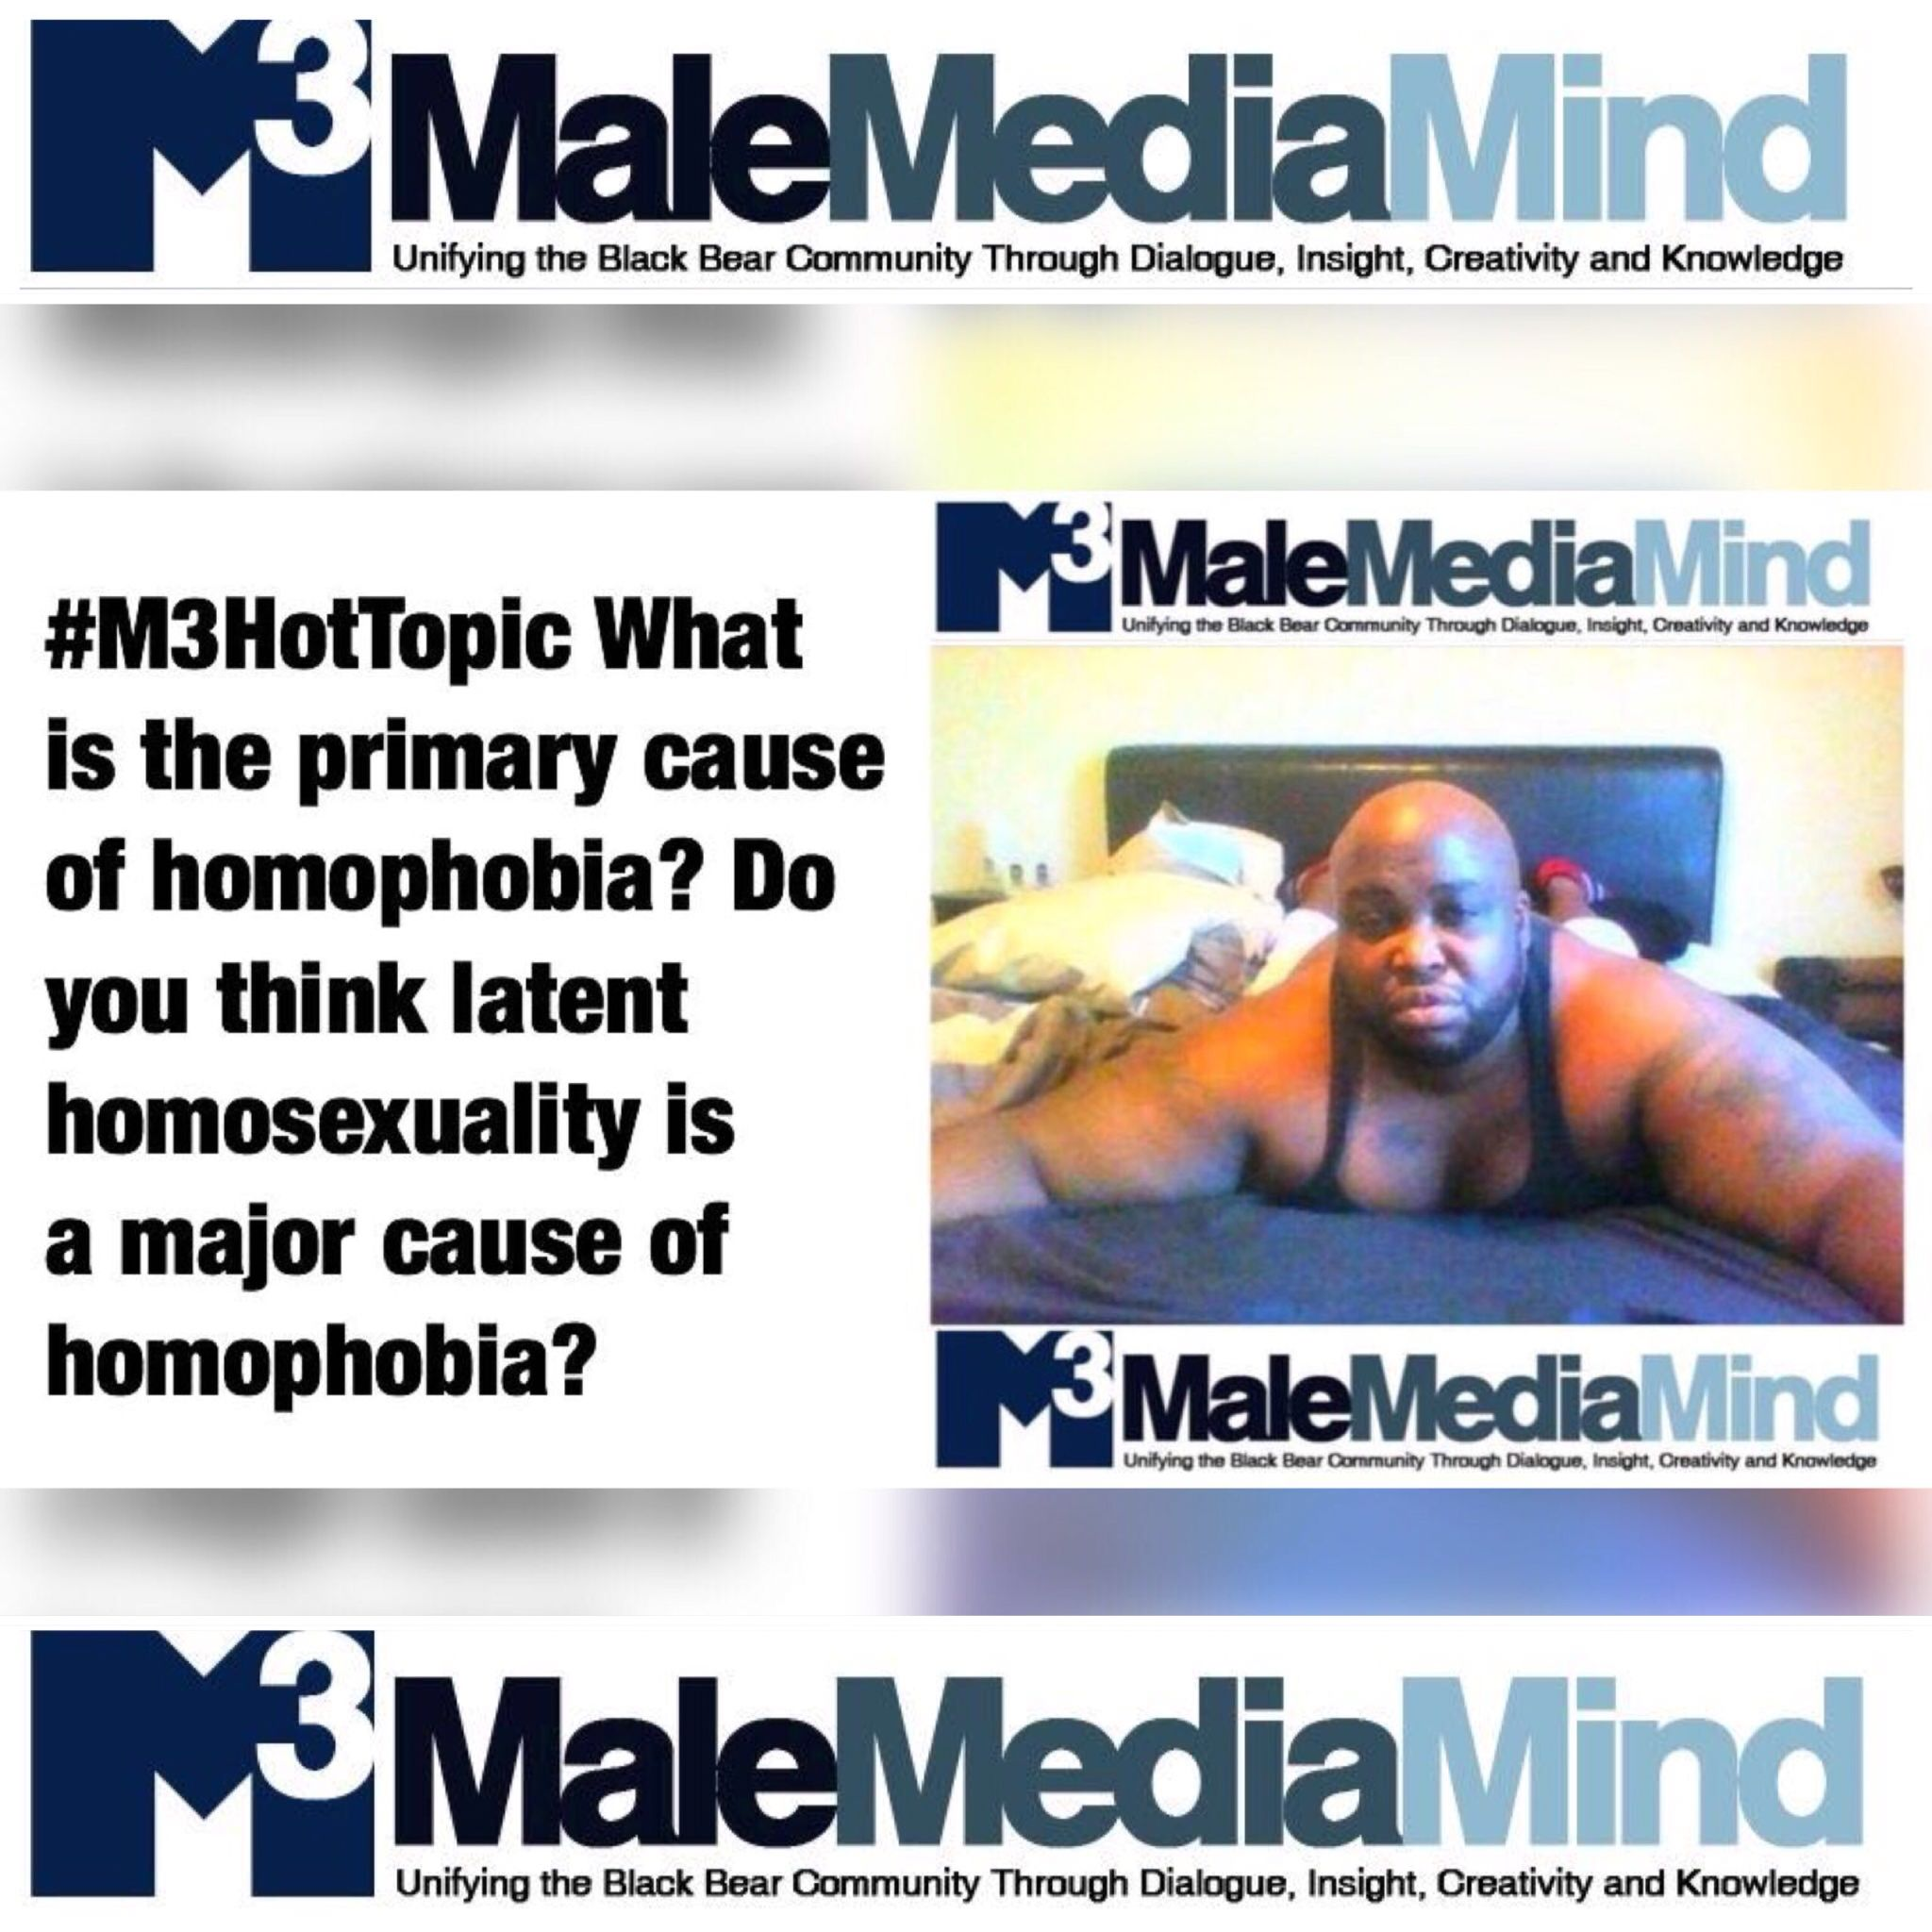 What is latent homosexuality